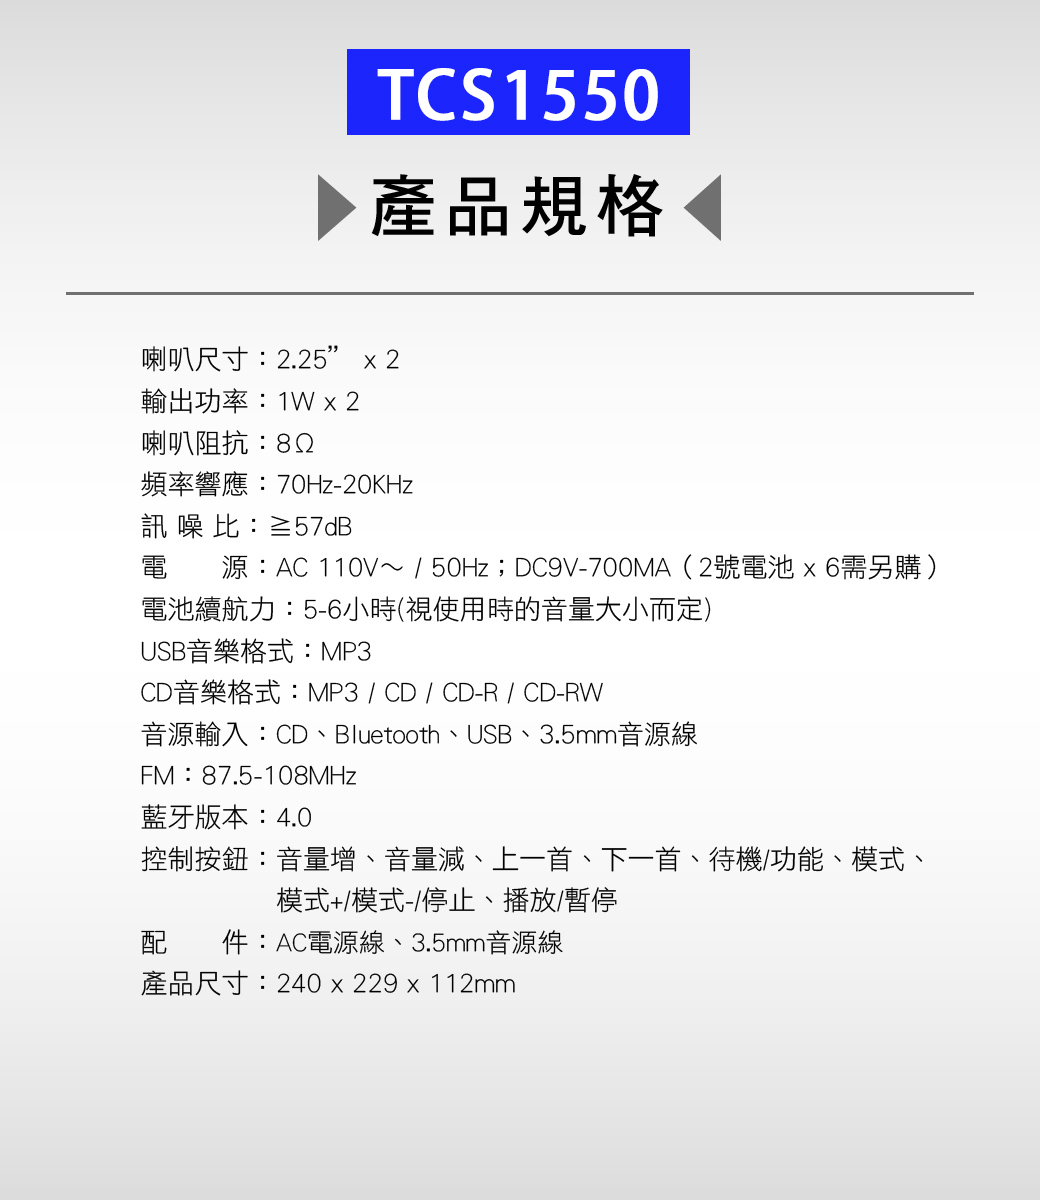 【T.C.STAR】CD/BT/USB/AUX/MP3 手提立體聲音響(TCS1